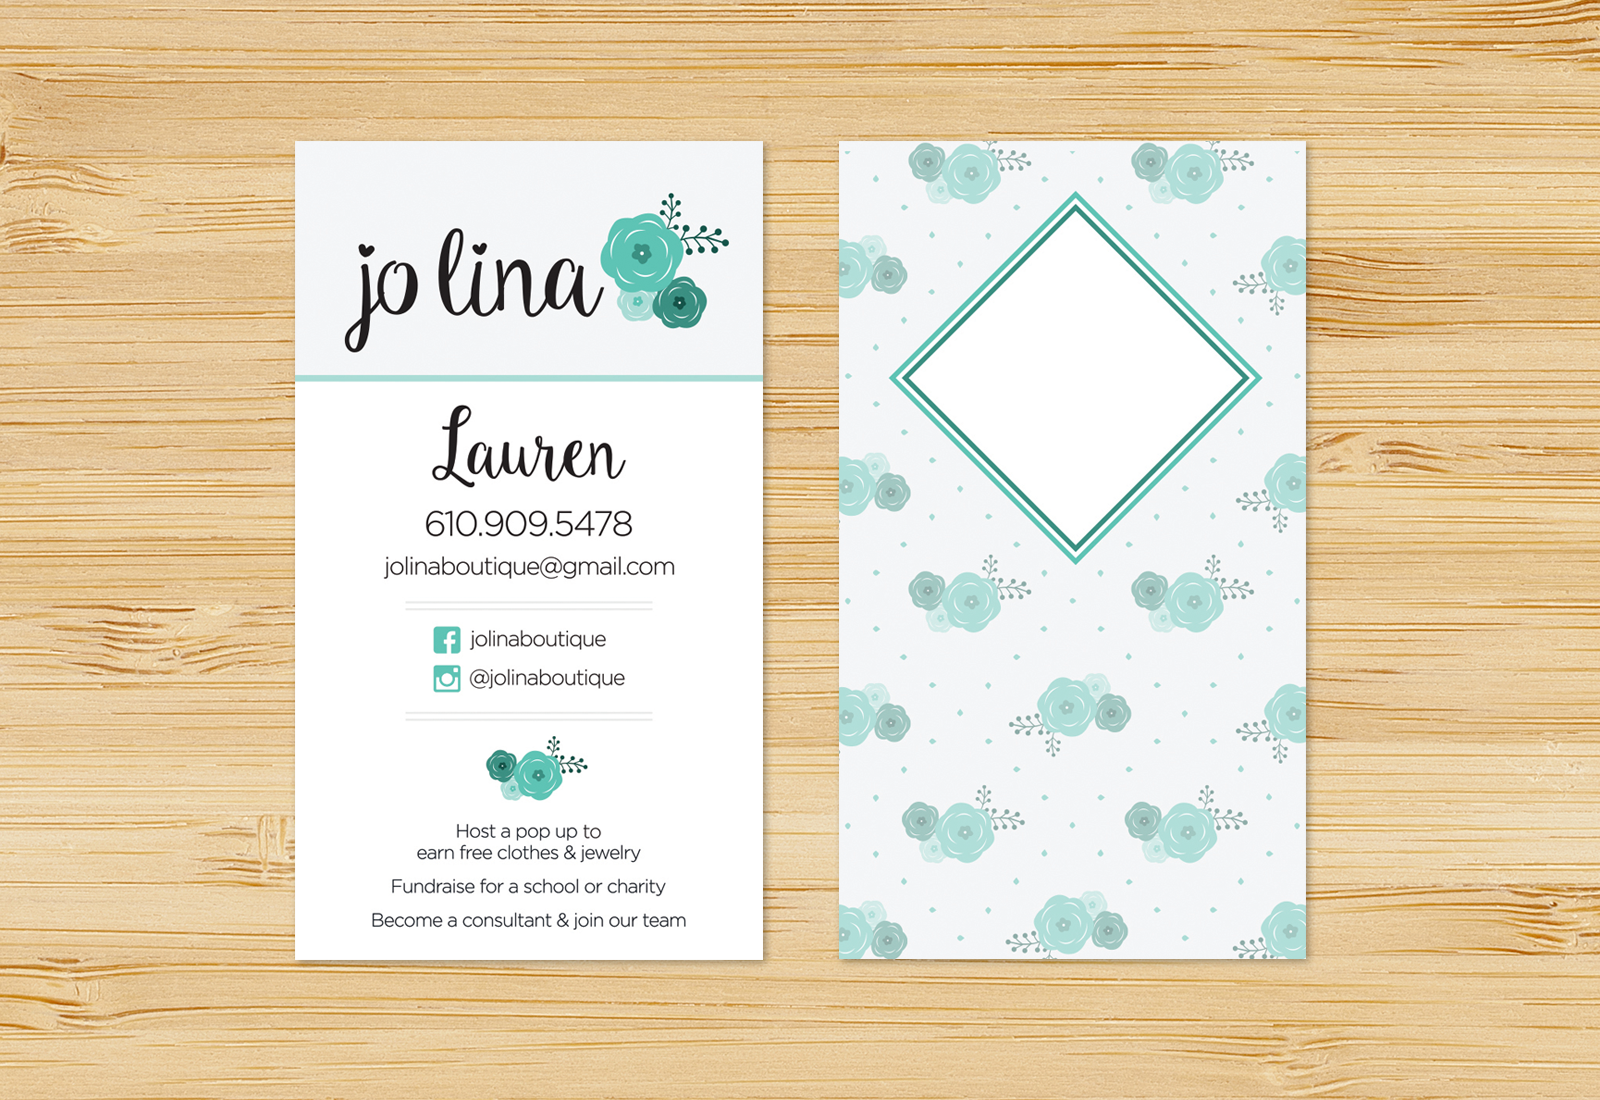 Jo Lina Business Card